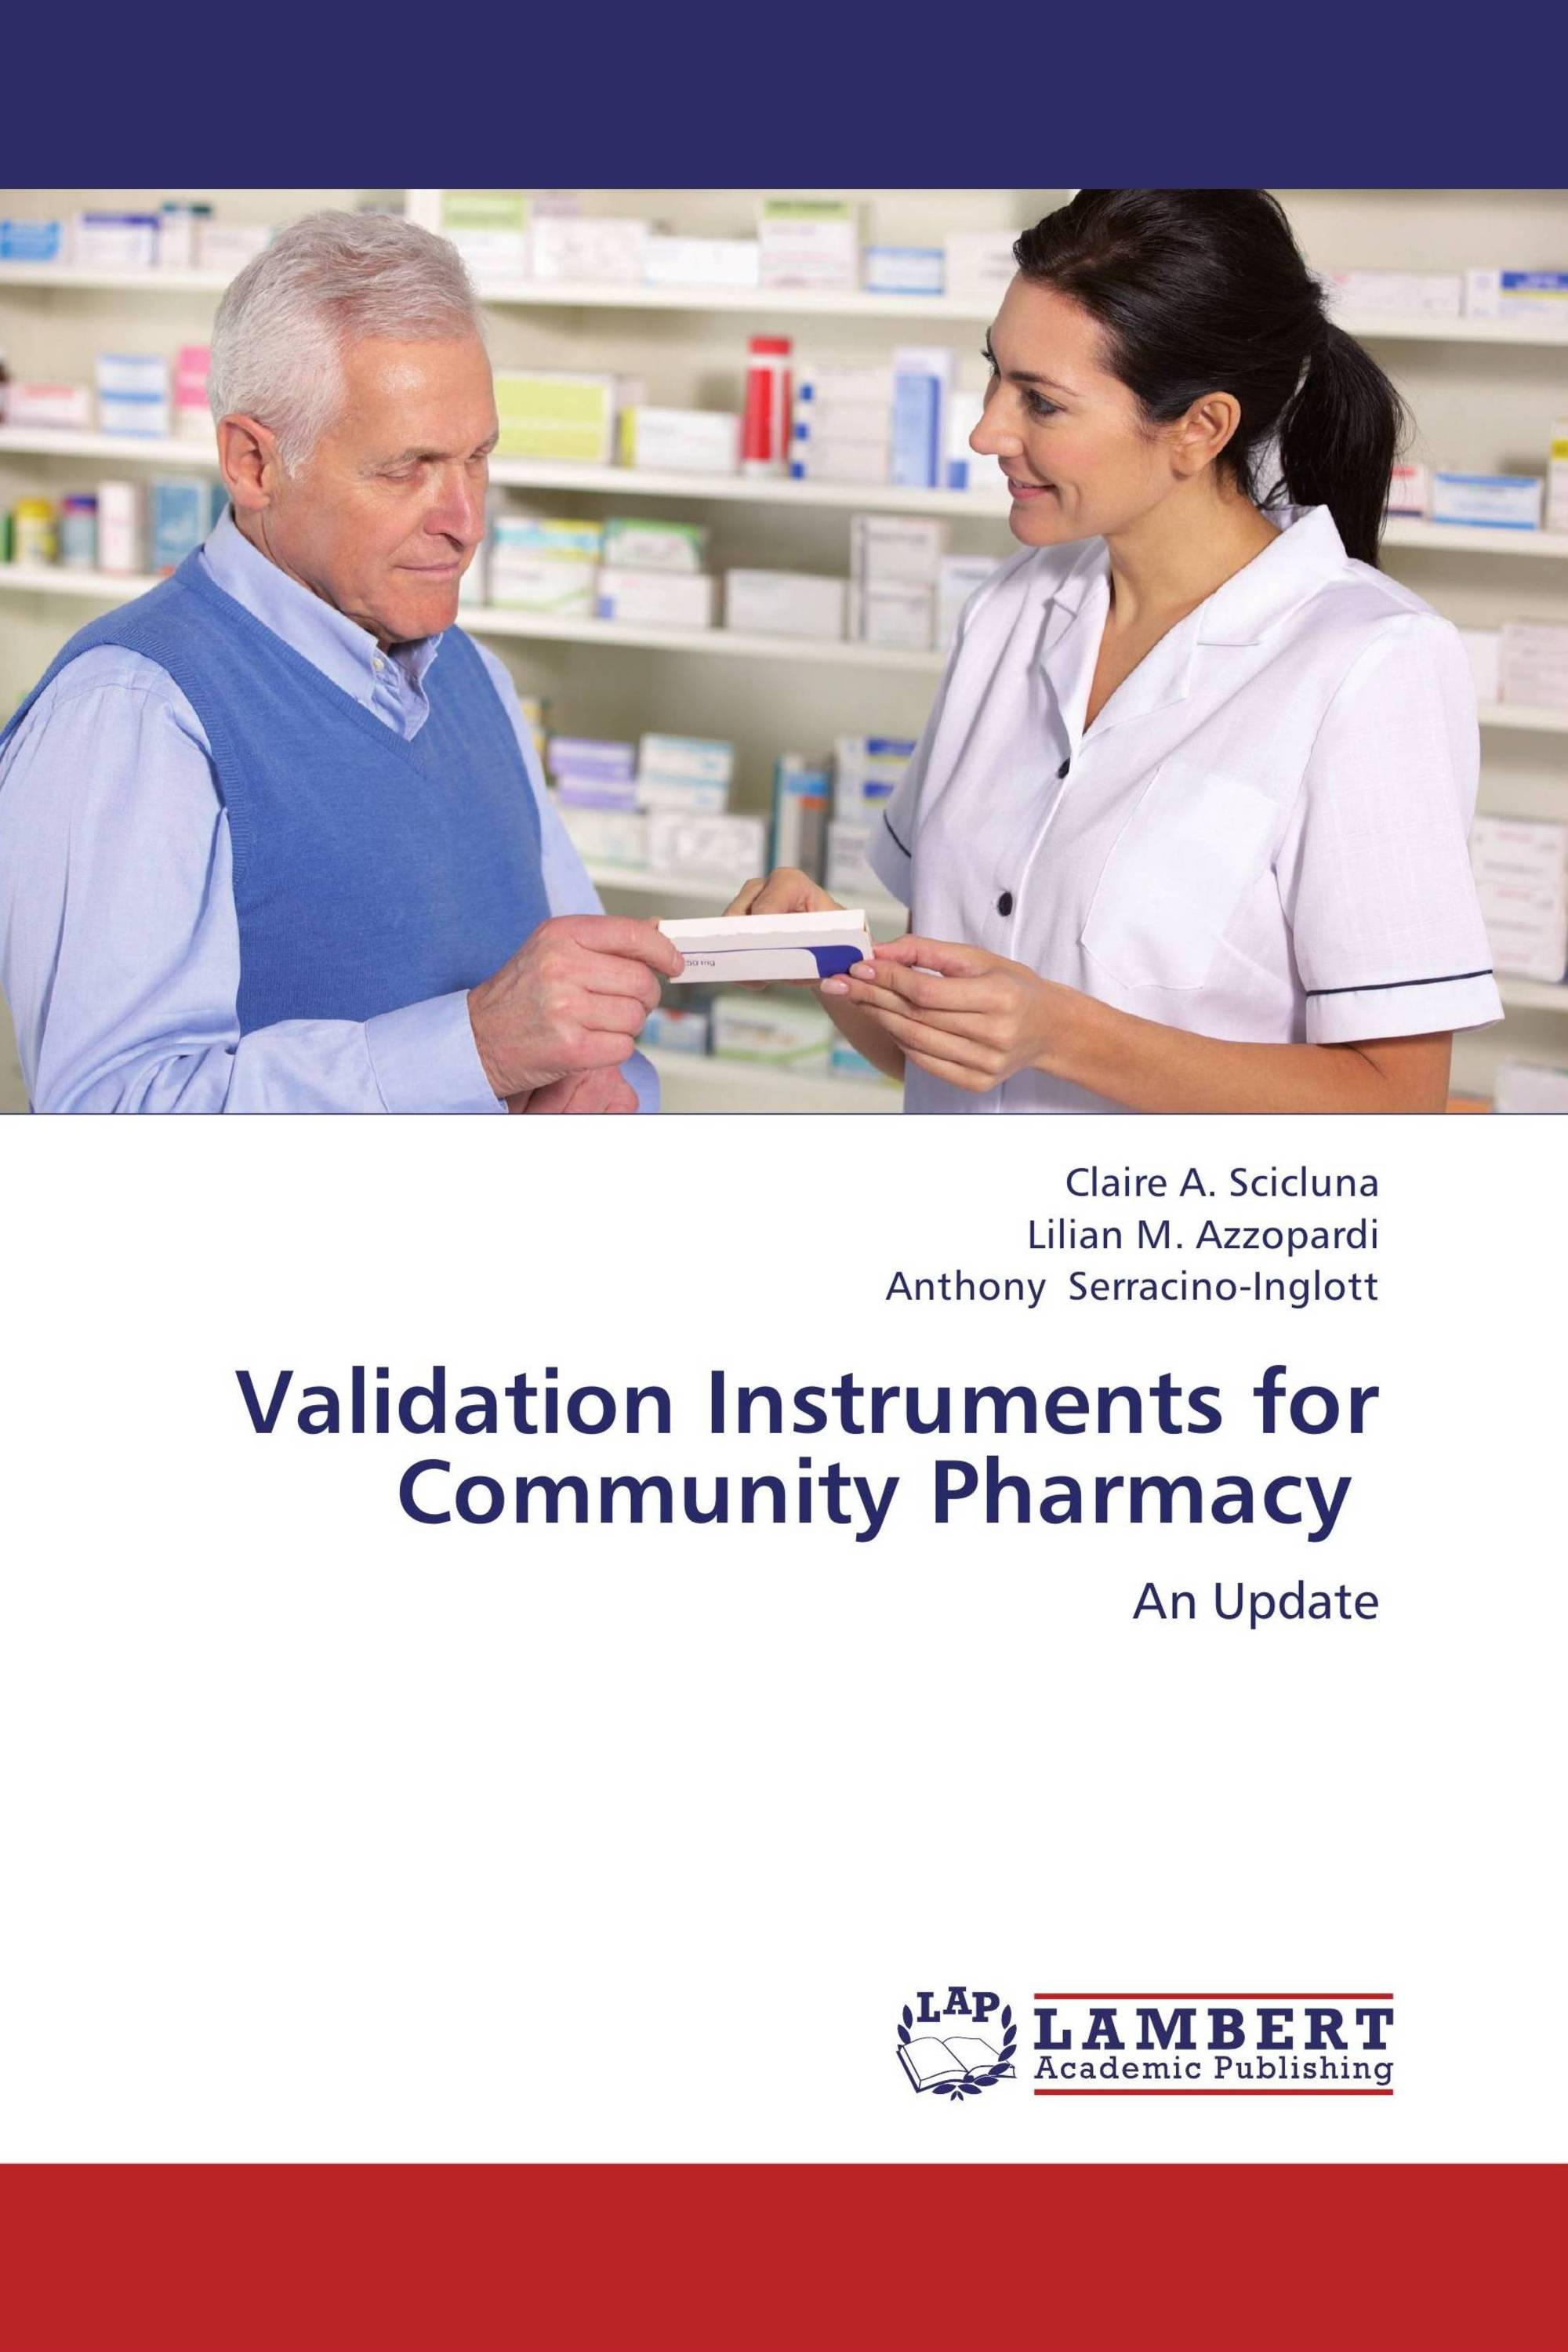 validation instrument thesis The aim of this process is to achieve different language versions of the english instrument that are conceptually equivalent in each of the target countries/cultures.